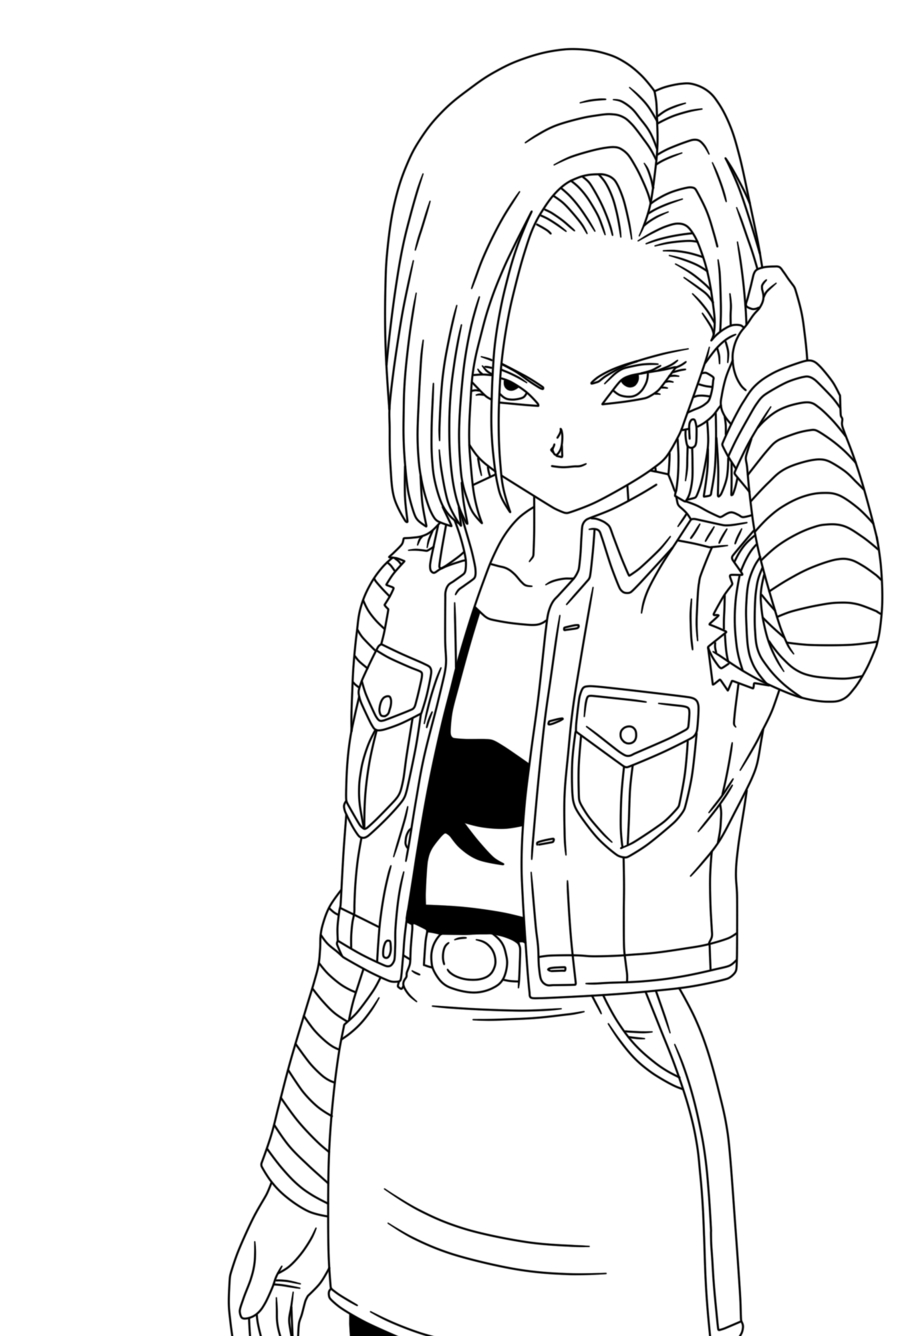 Coloriage c18 dragon ball z imprimer et colorier - Dessin de dragon ball ...